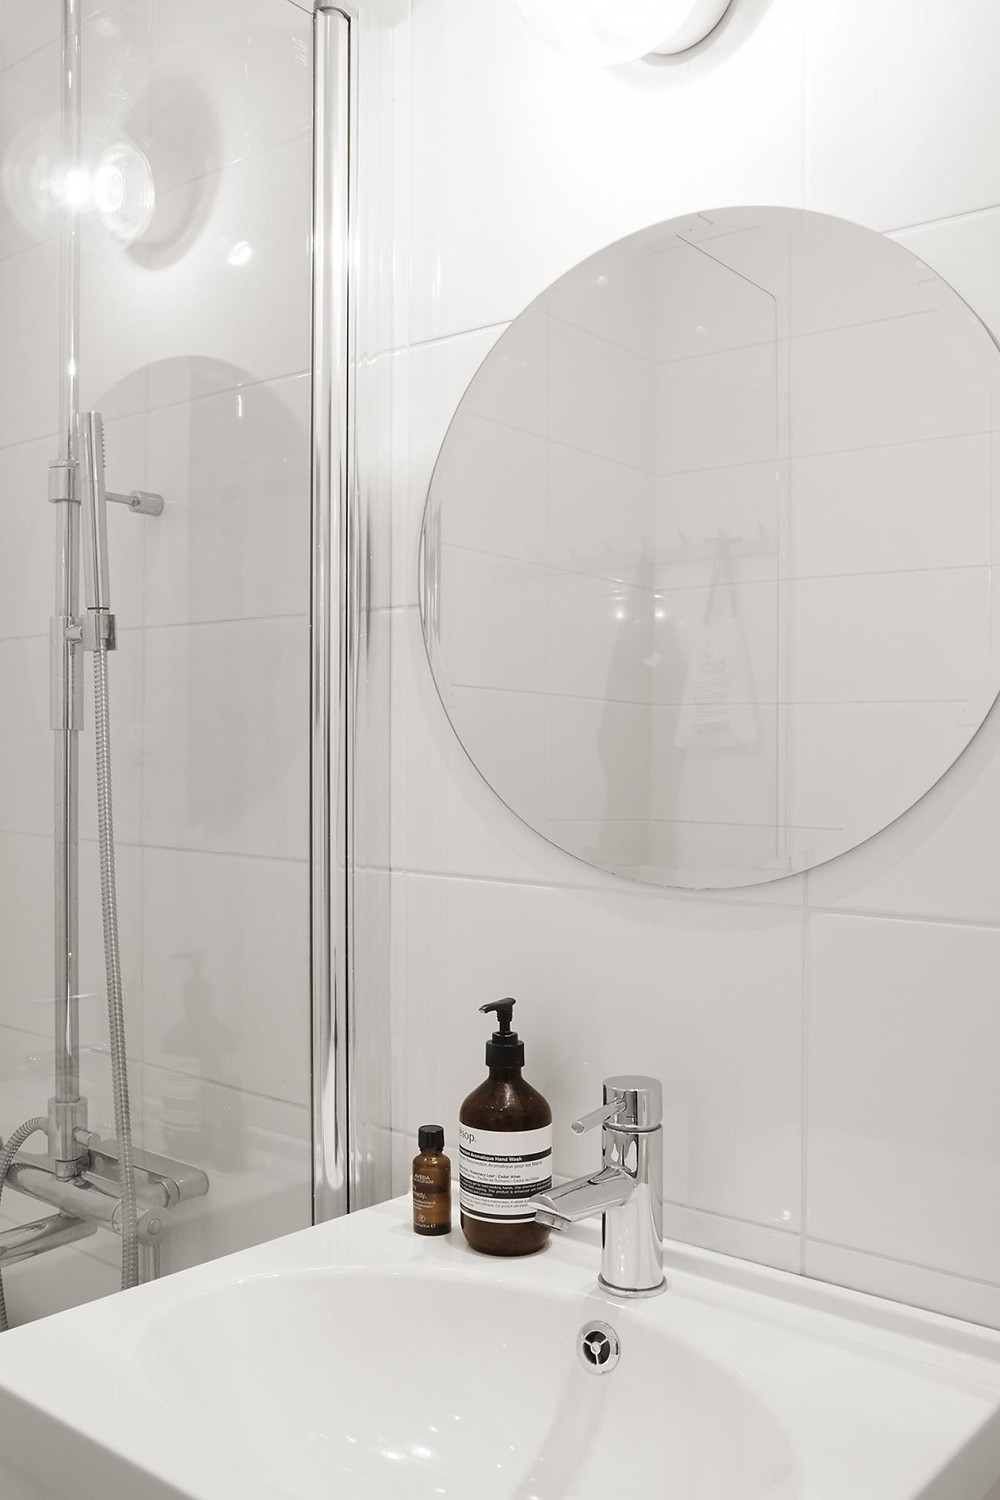 Scandinavian interior design bathroom with white tiles and round mirro